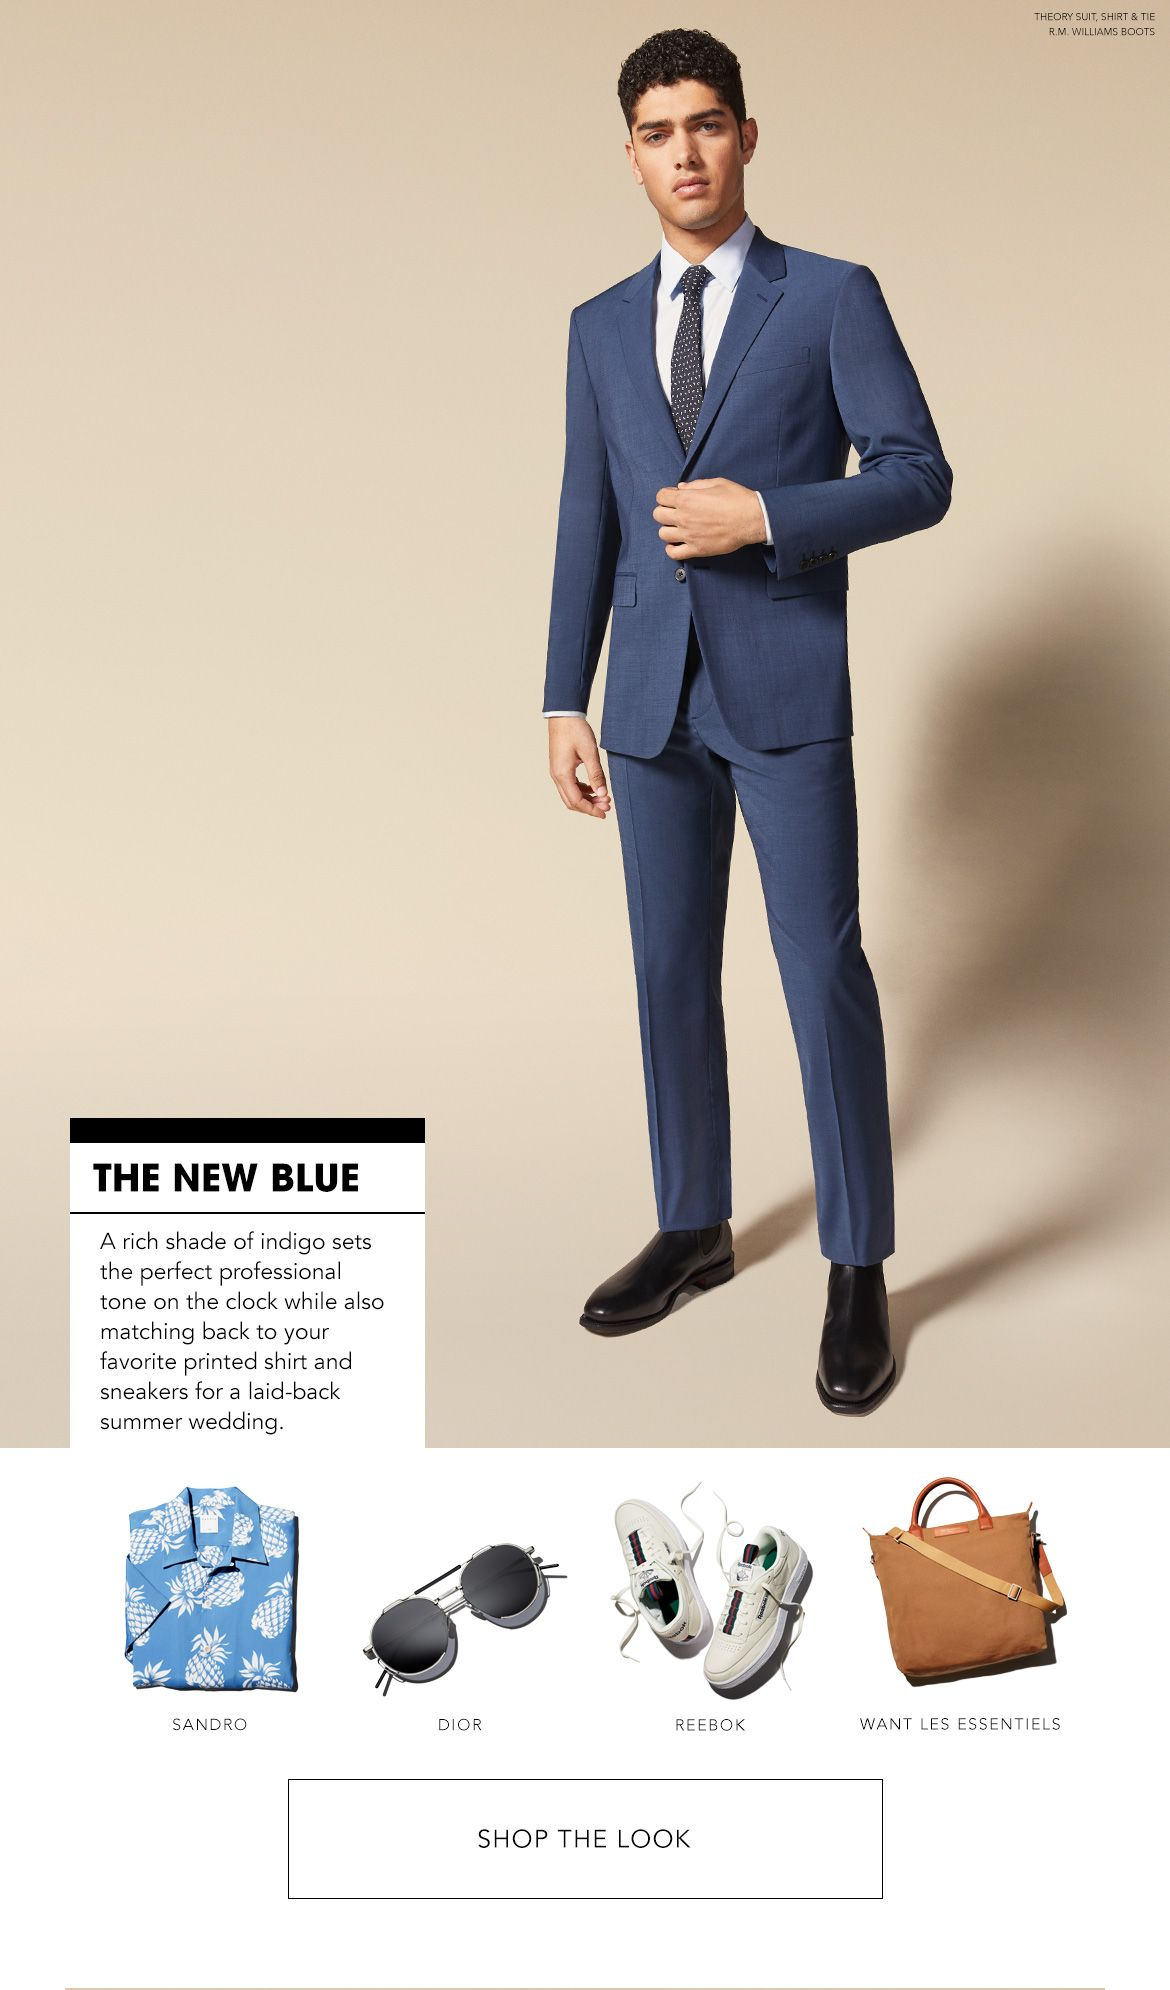 Styled for the New Blue